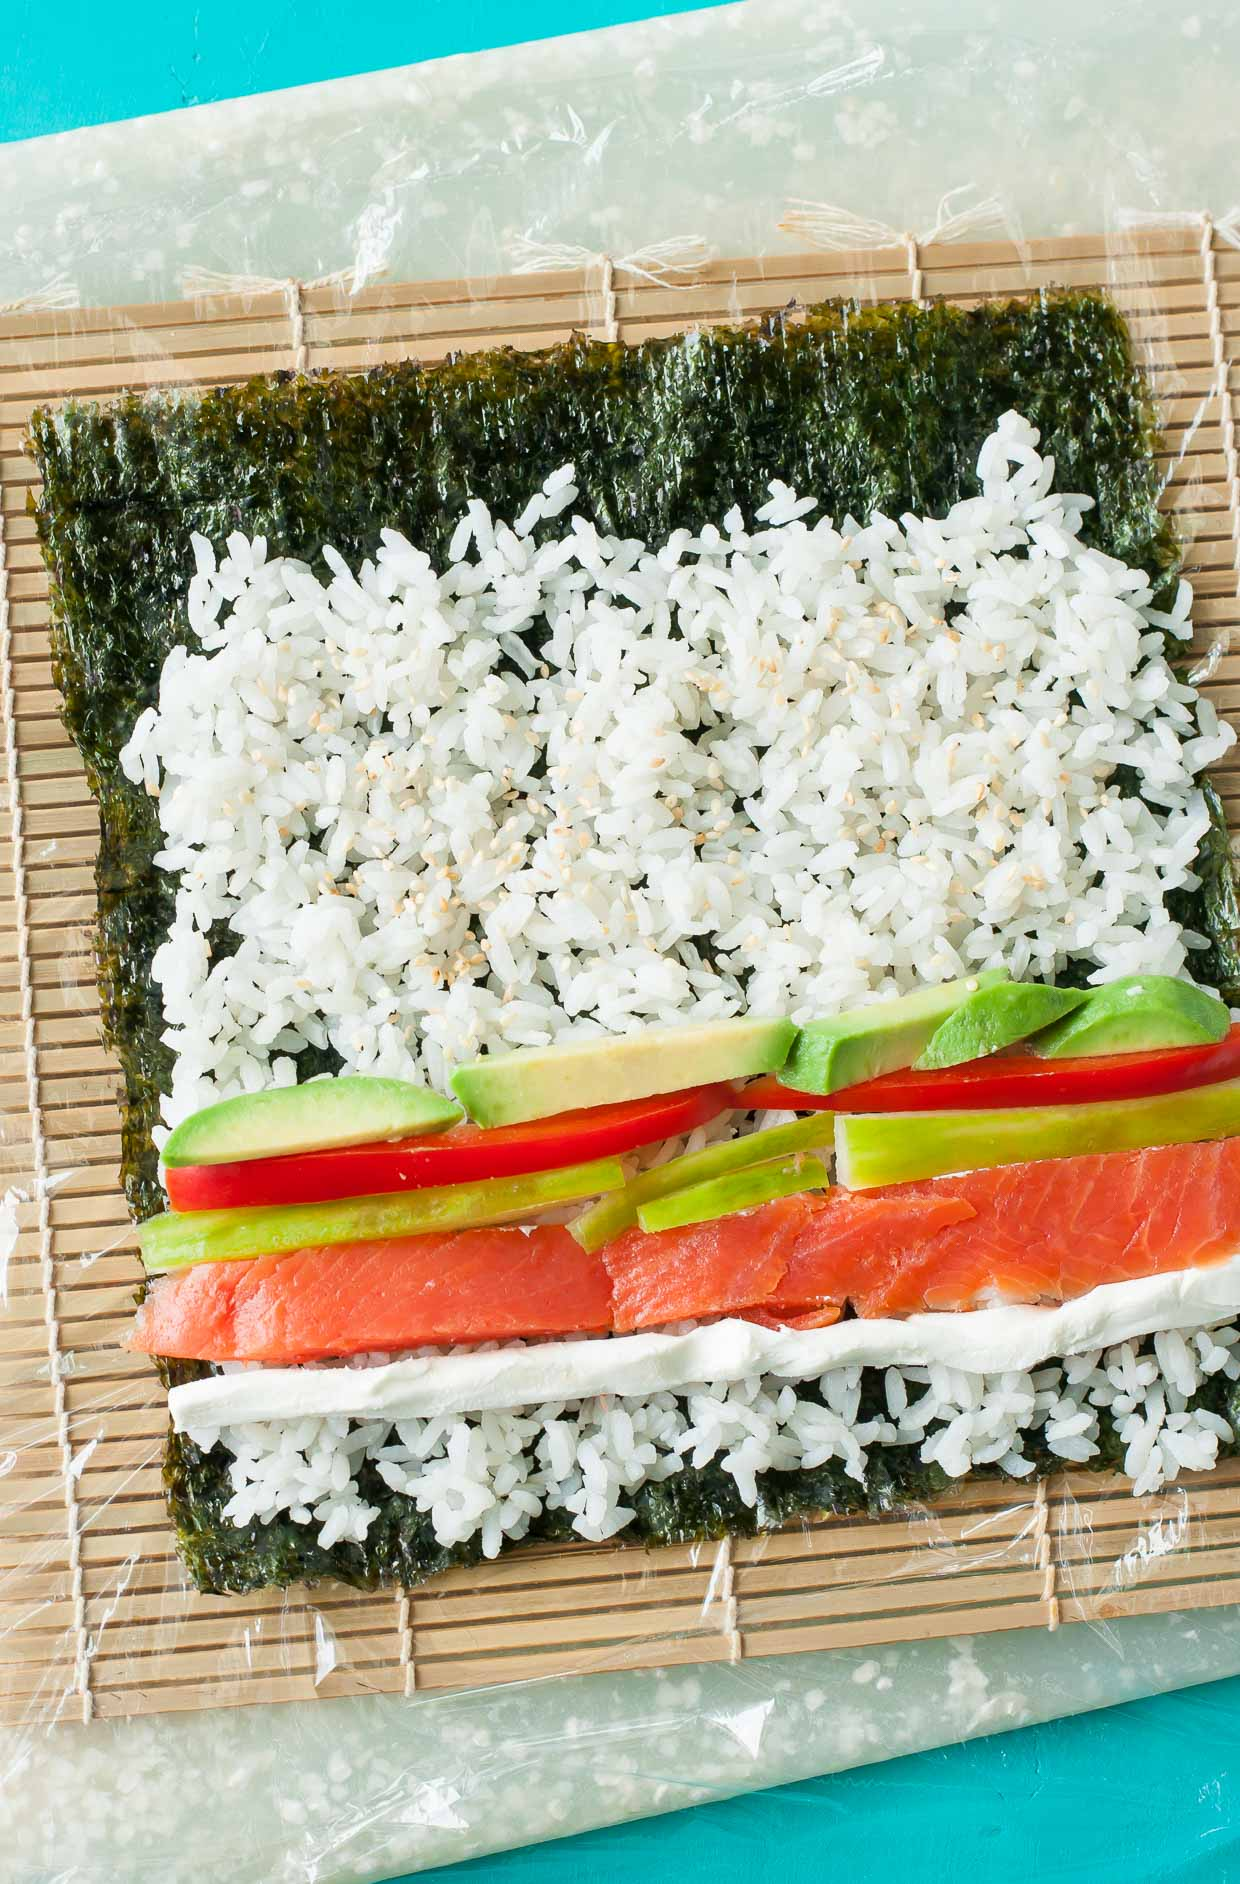 Homemade Sushi: Tips, Tricks, and Toppings! - Peas and Crayons